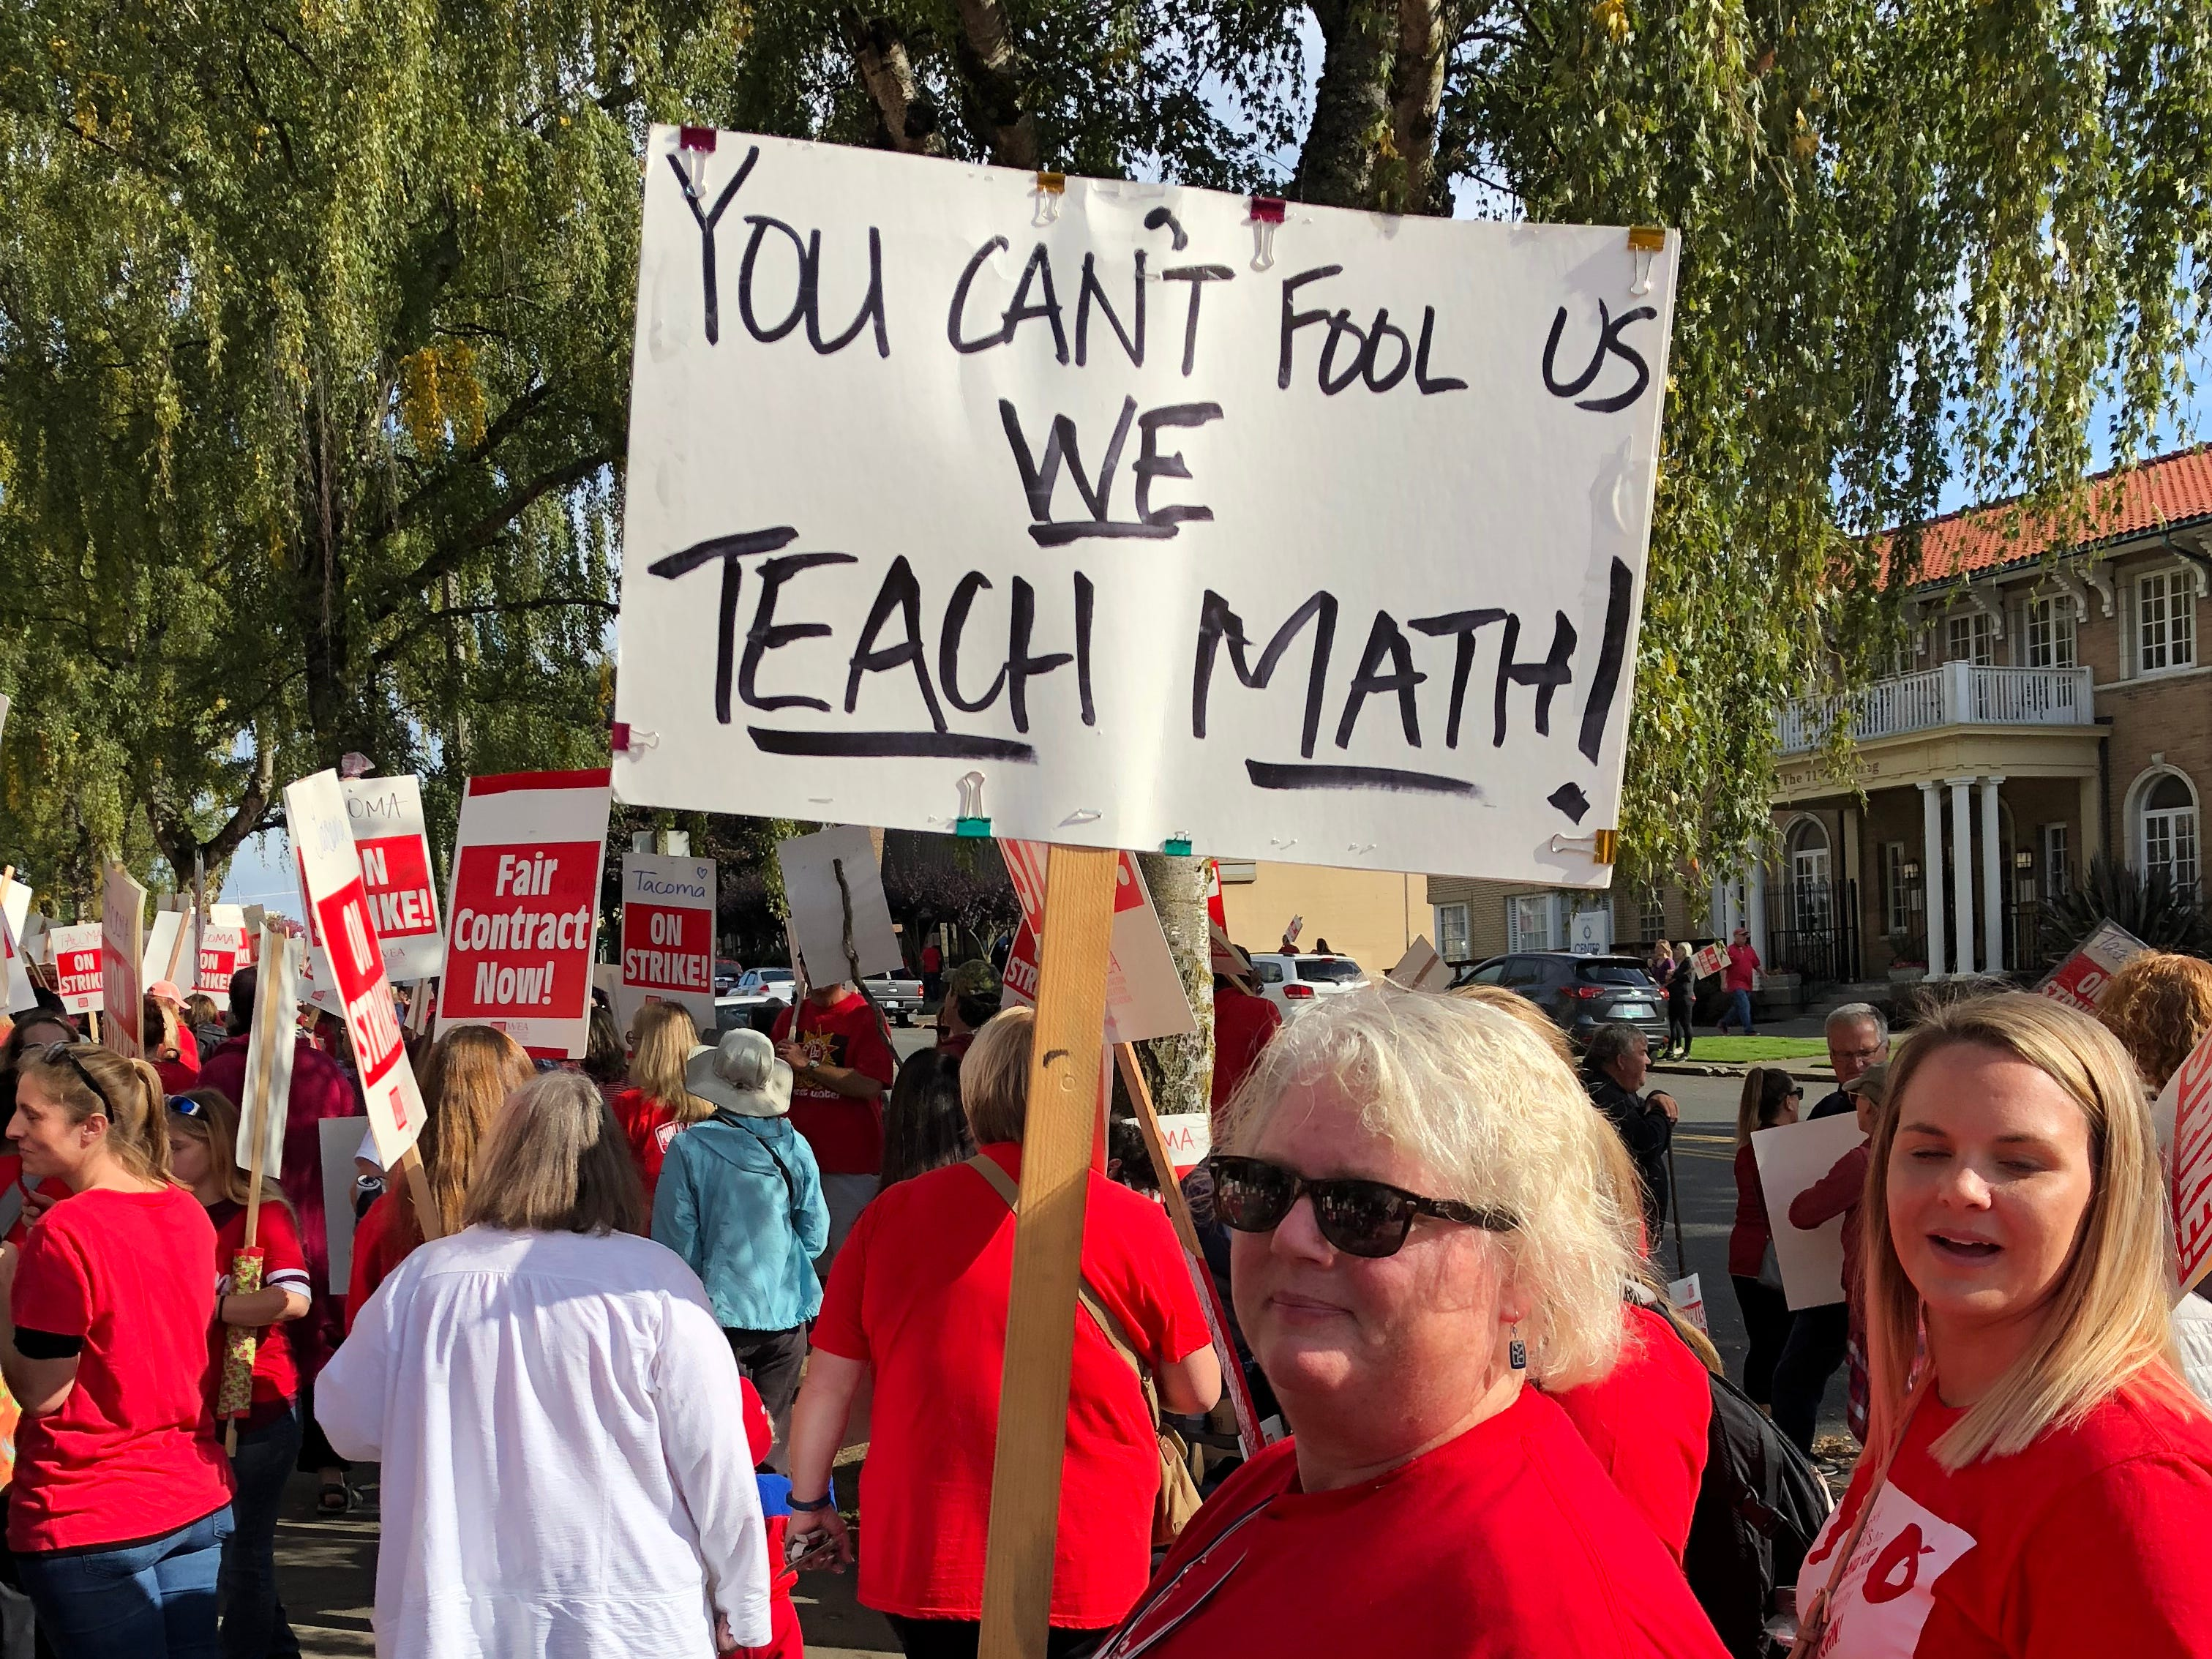 More than 2200 teachers -- plus hundreds of parents and students who showed up to voice their support -- from the Tacoma School District in Tacoma, Wash., Sept. 10, 2018, walked the picket line Monday on the third day of the Tacoma teachers' strike, many of them carrying hand-made signs.